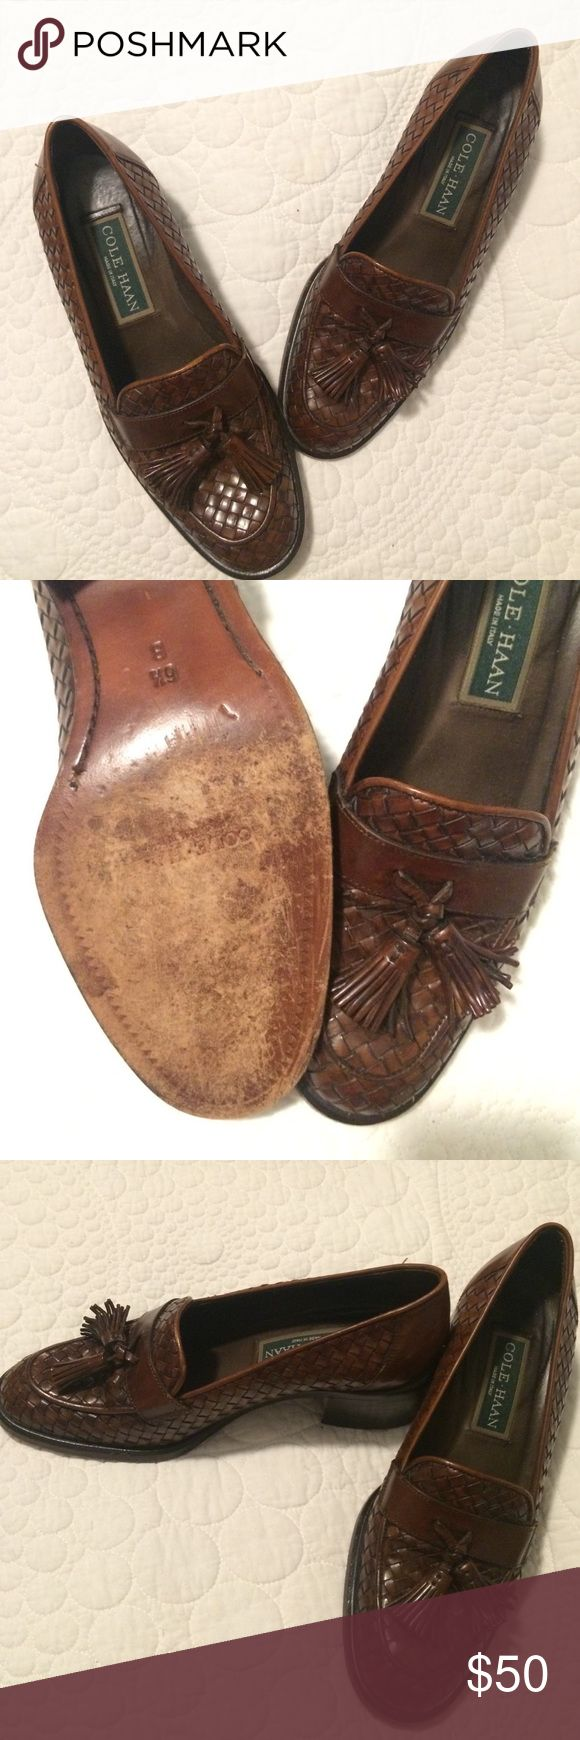 Vintage COLE HAAN Women's loafers Made In Italy. Woven leather. Vintage. Barely worn. Adorable shoe with small heel. Cole Haan Shoes